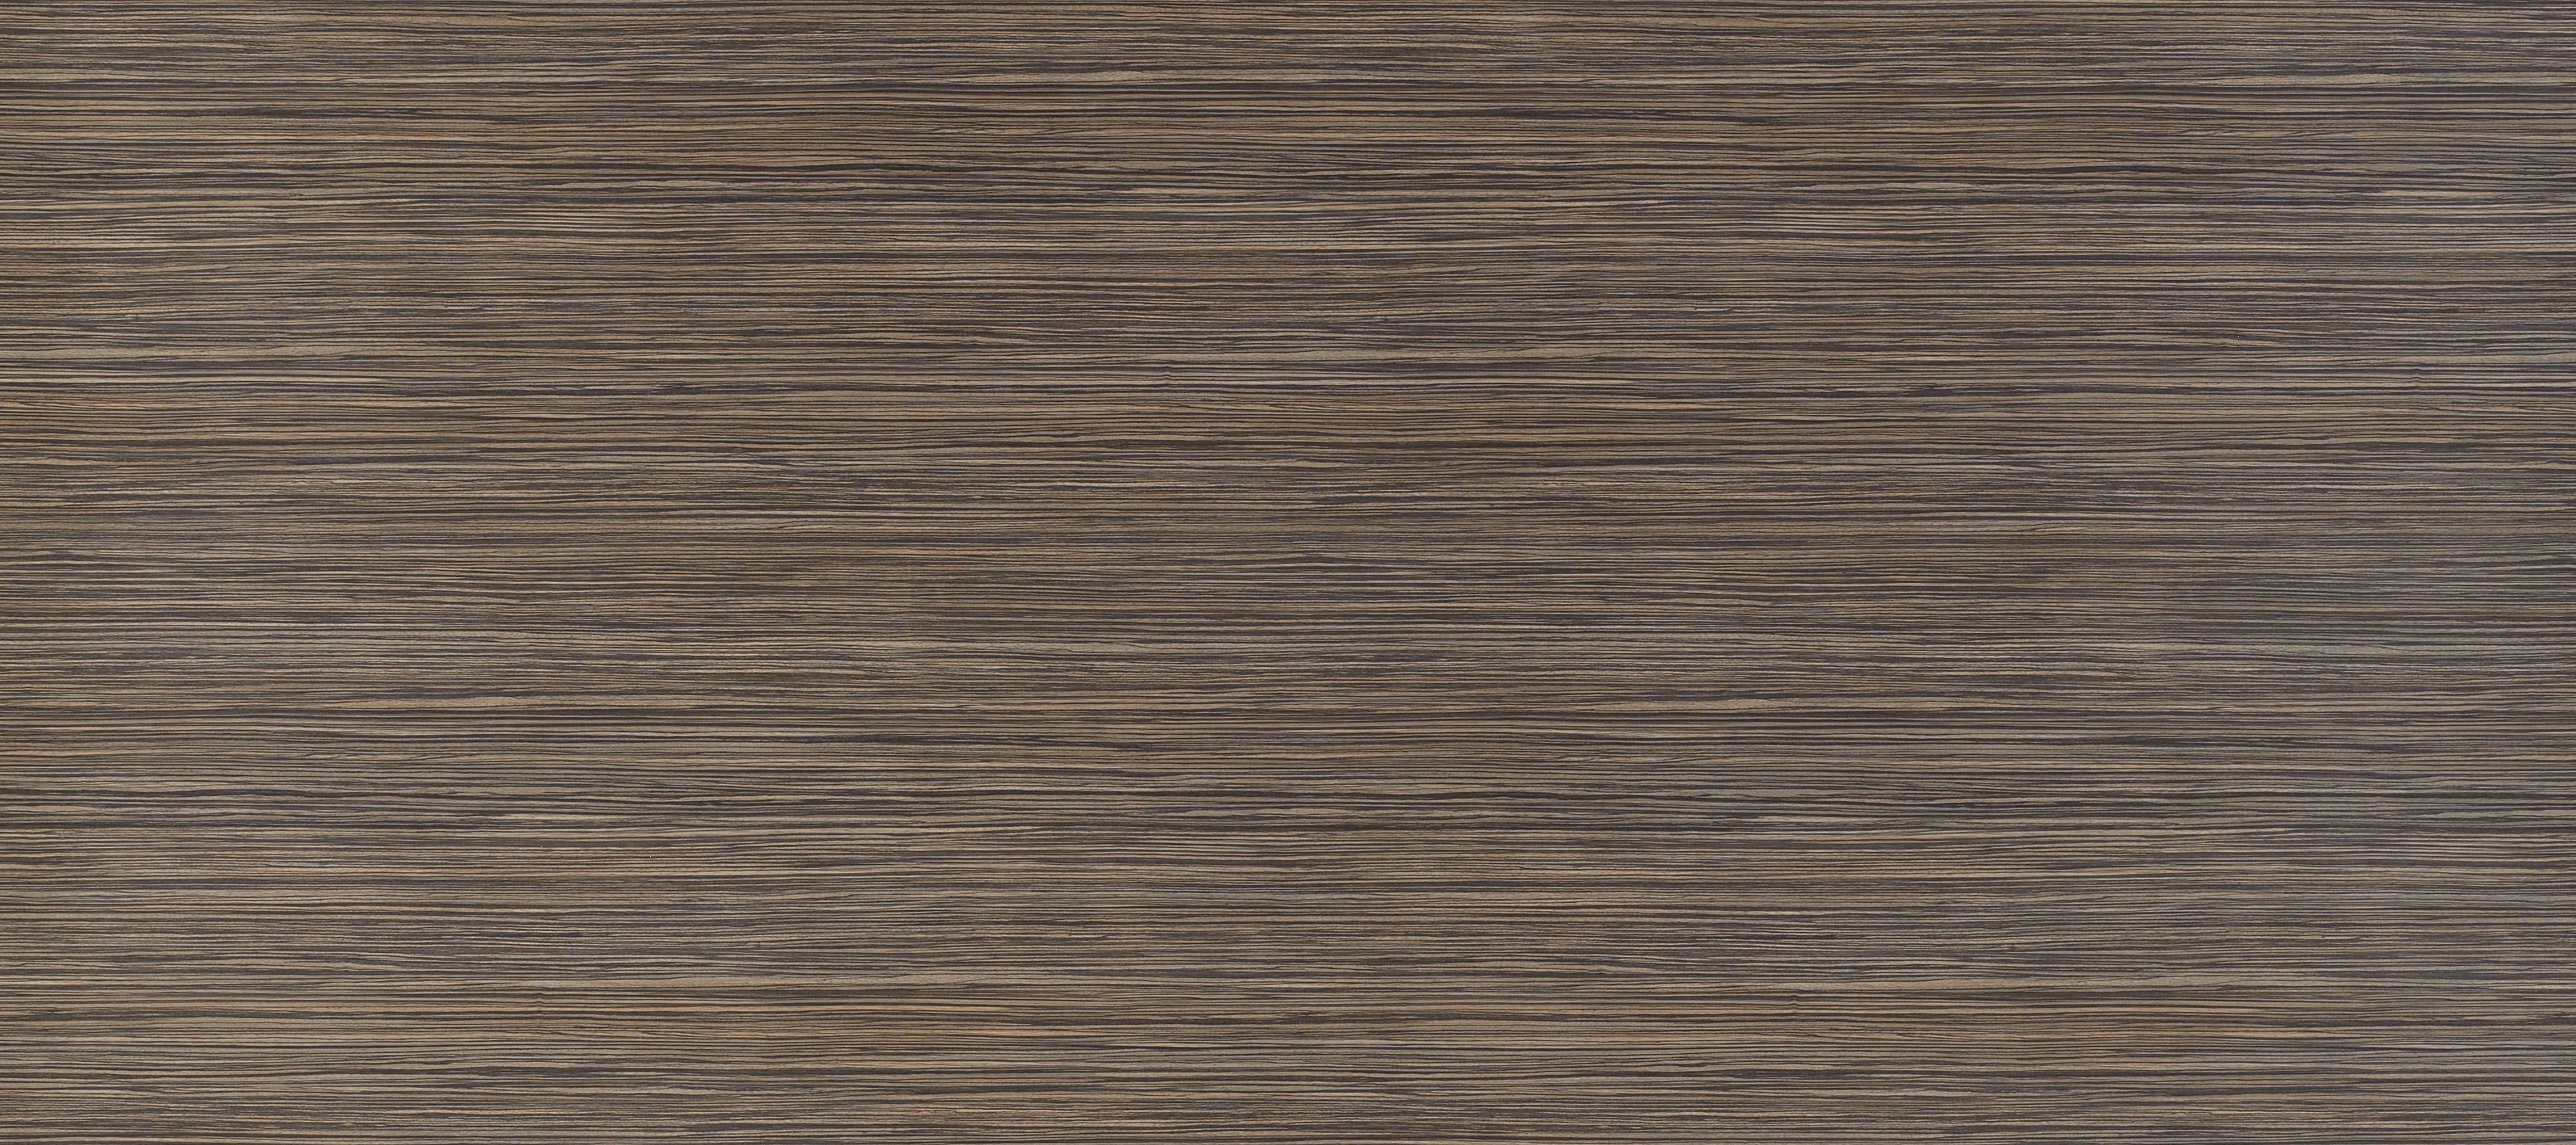 Texture wood free download photo download wood texture texture wood free download photo download wood texture background texture voltagebd Choice Image